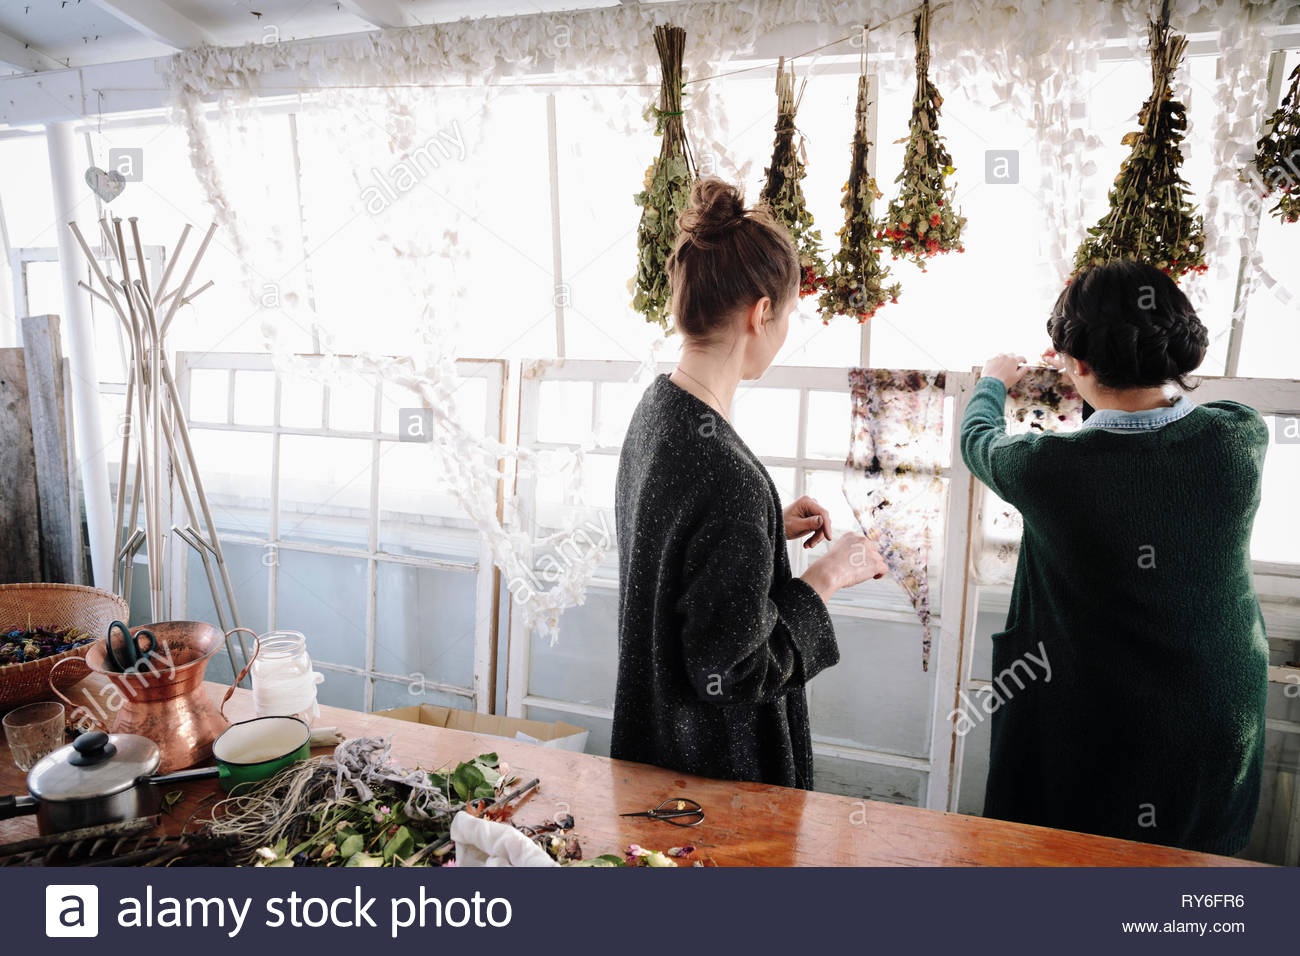 Creative women hanging flowers to dry - Stock Image